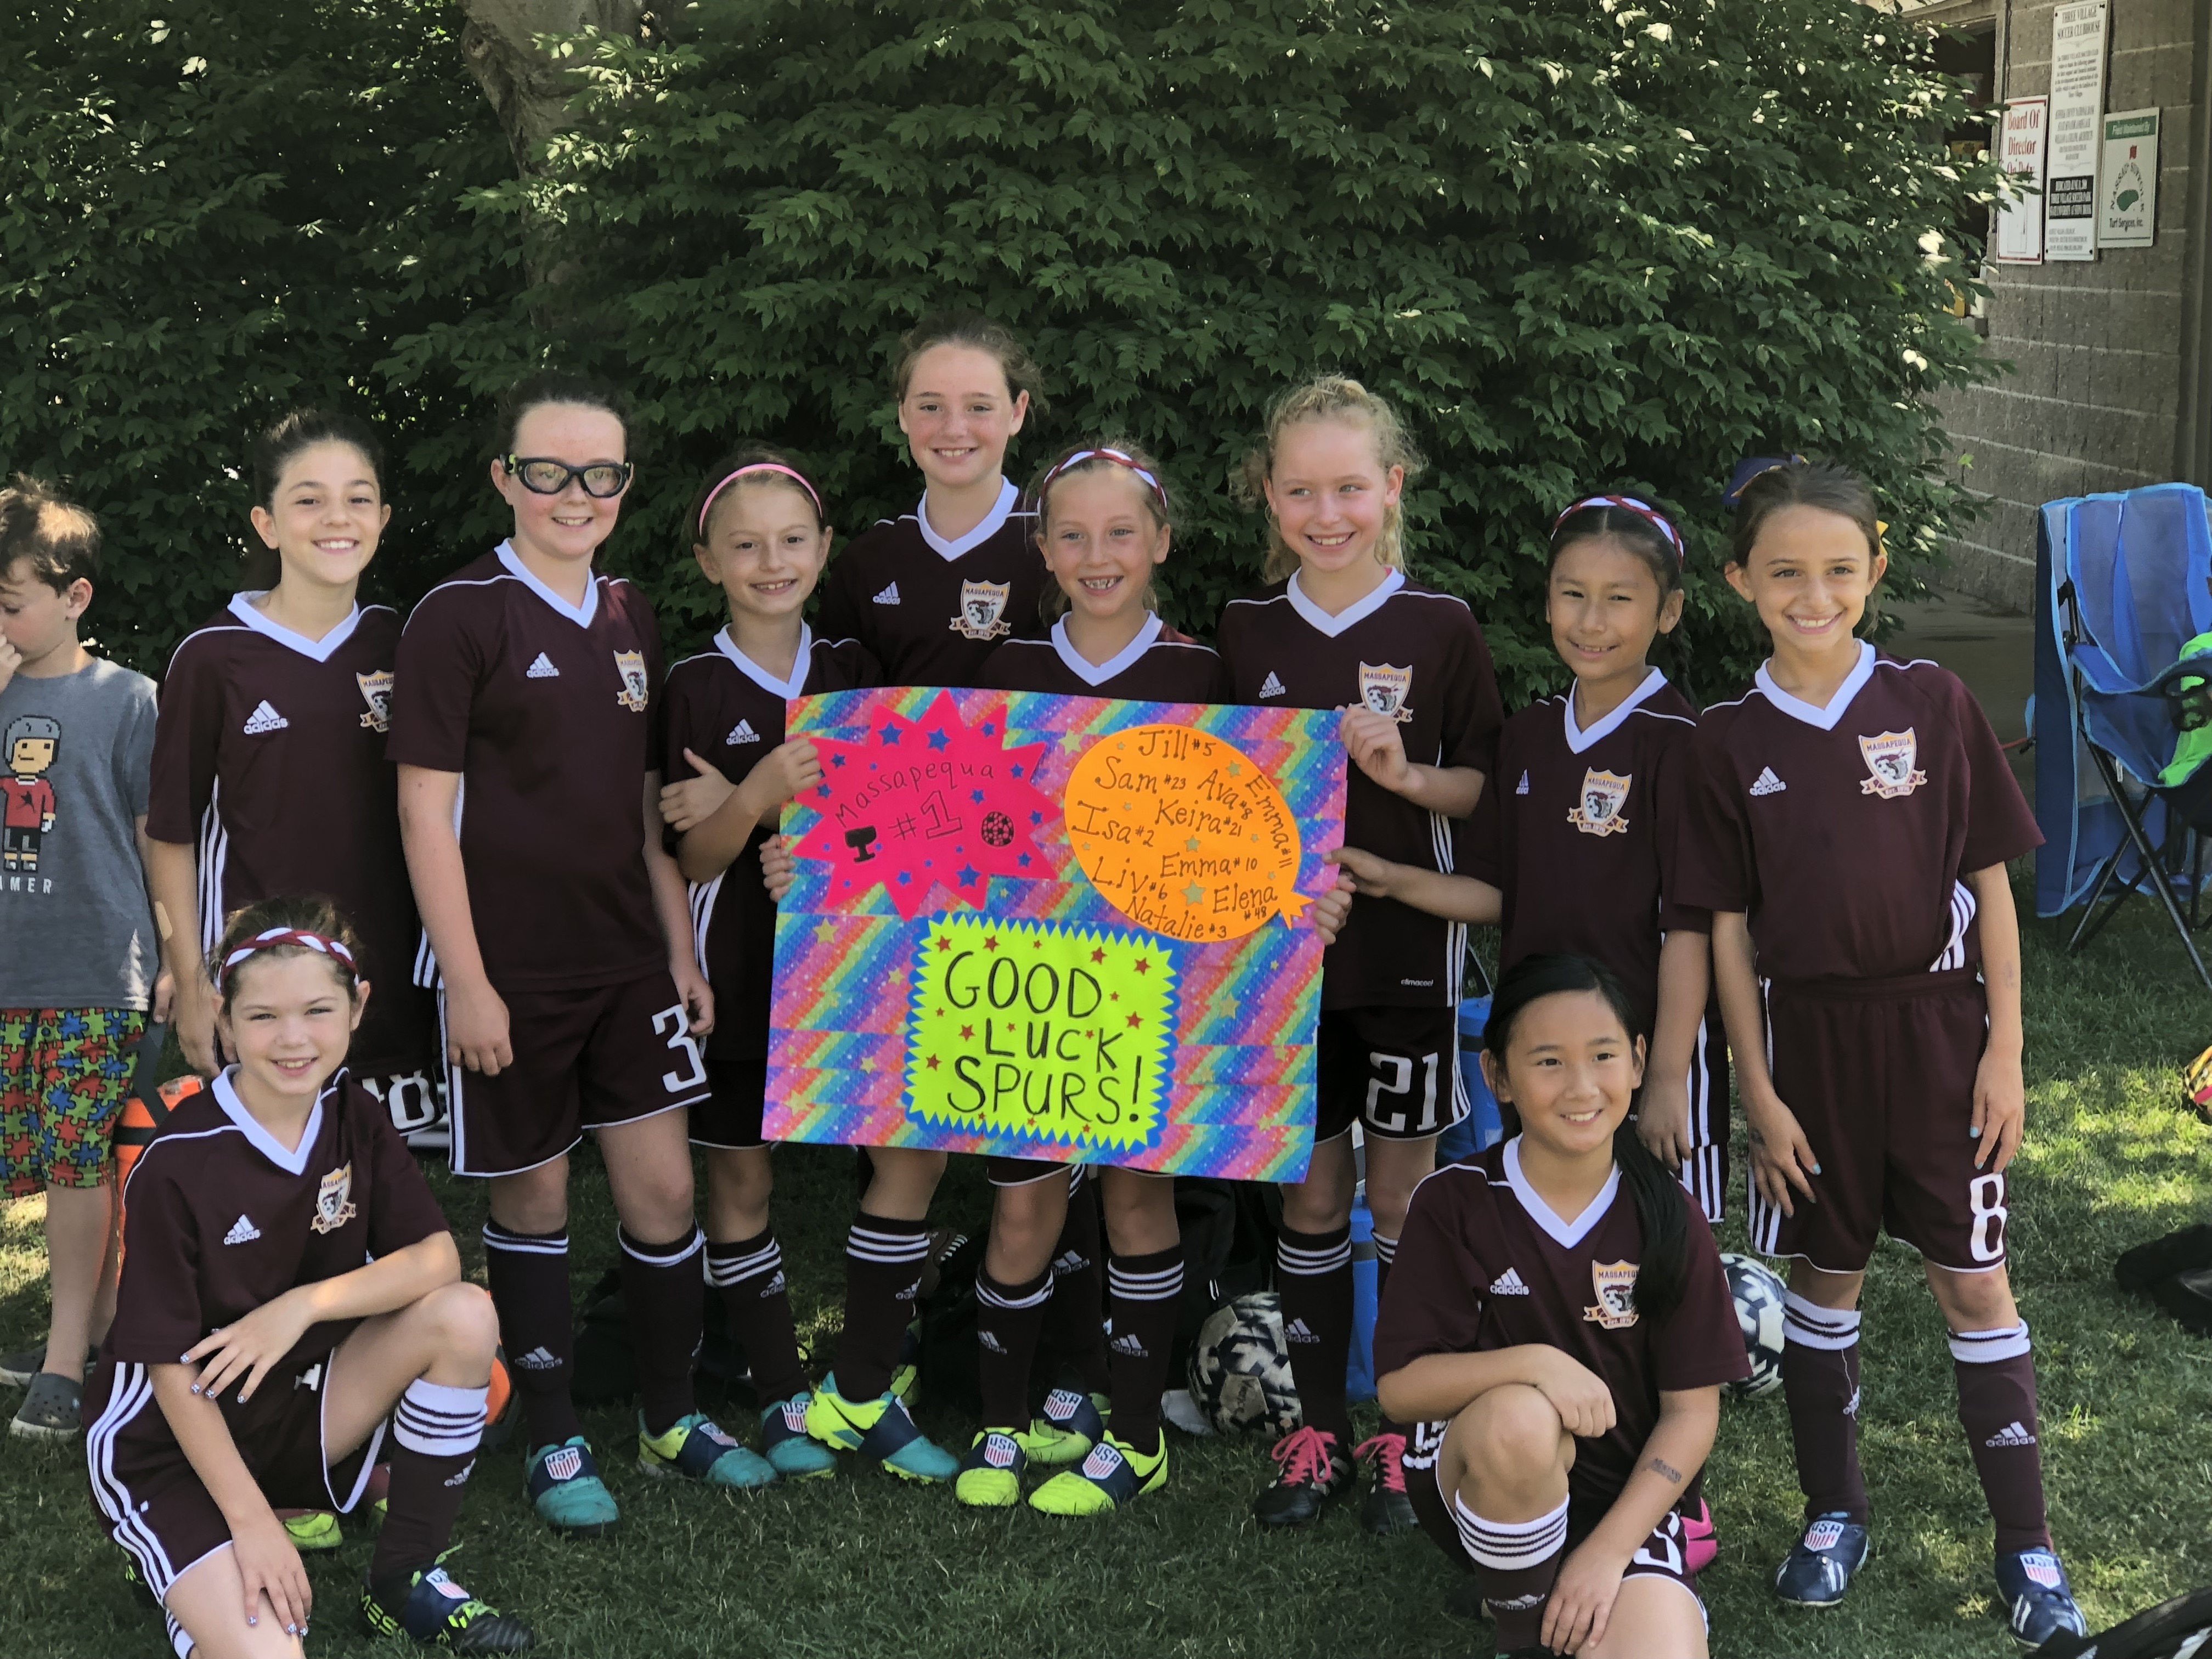 Congratulations to the GU9 2009 MSC Lady Spurs 2018 LI Cup Champions!